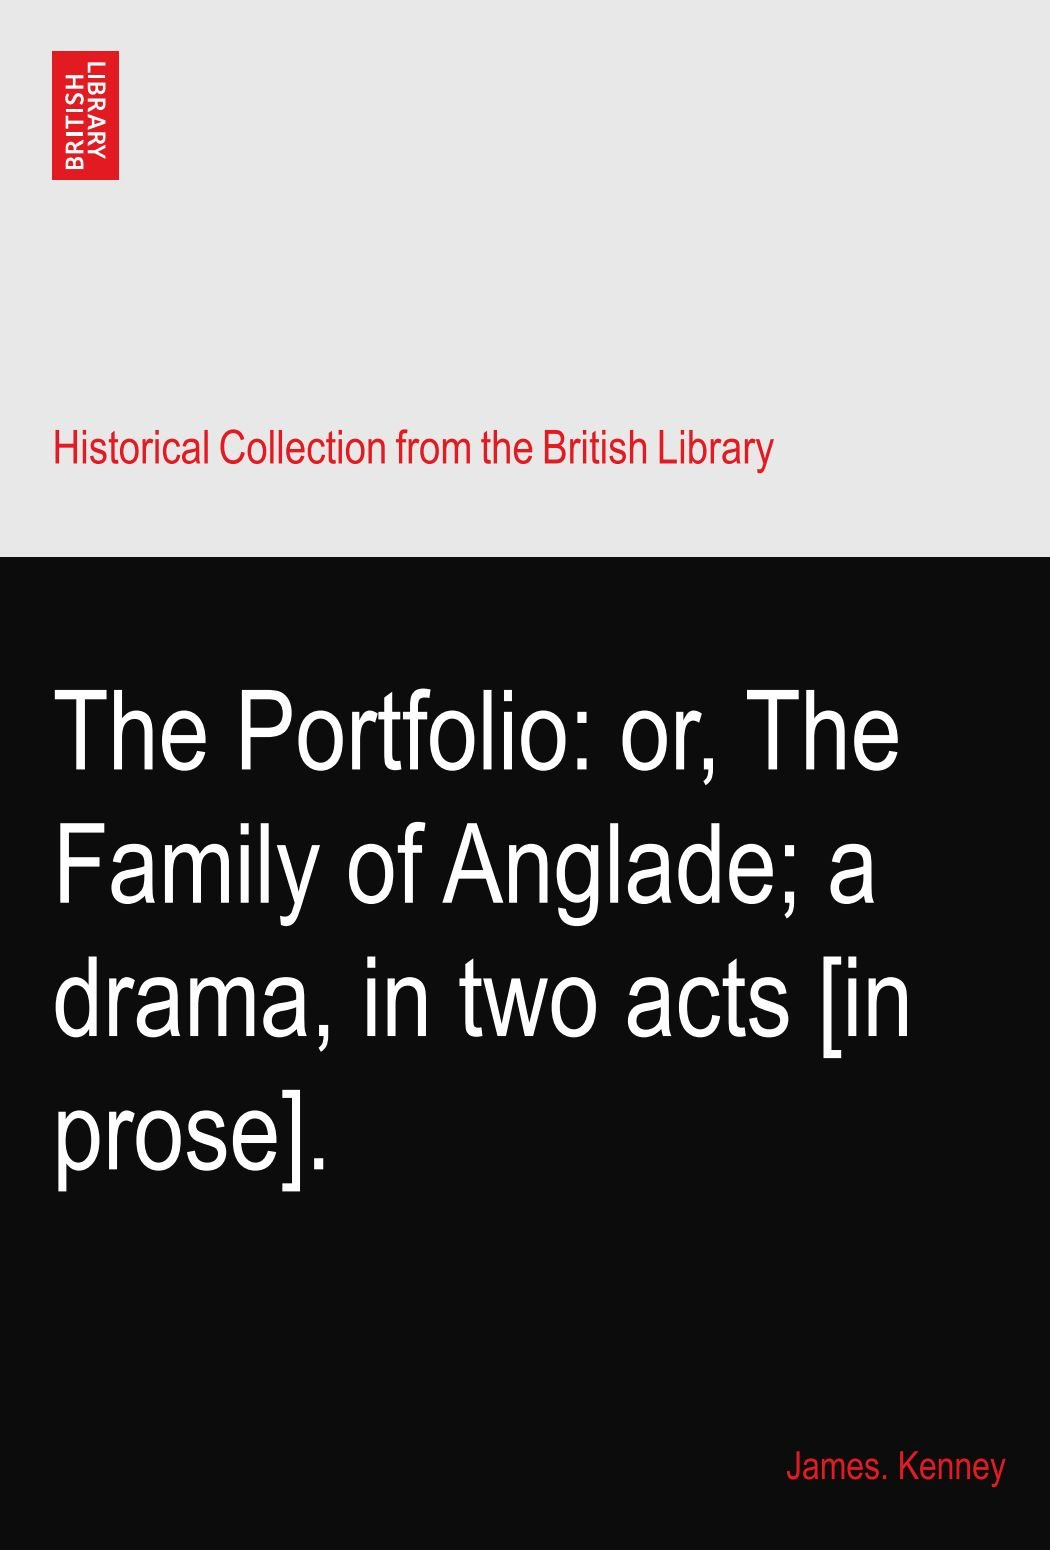 The Portfolio: or, The Family of Anglade; a drama, in two acts [in prose]. pdf